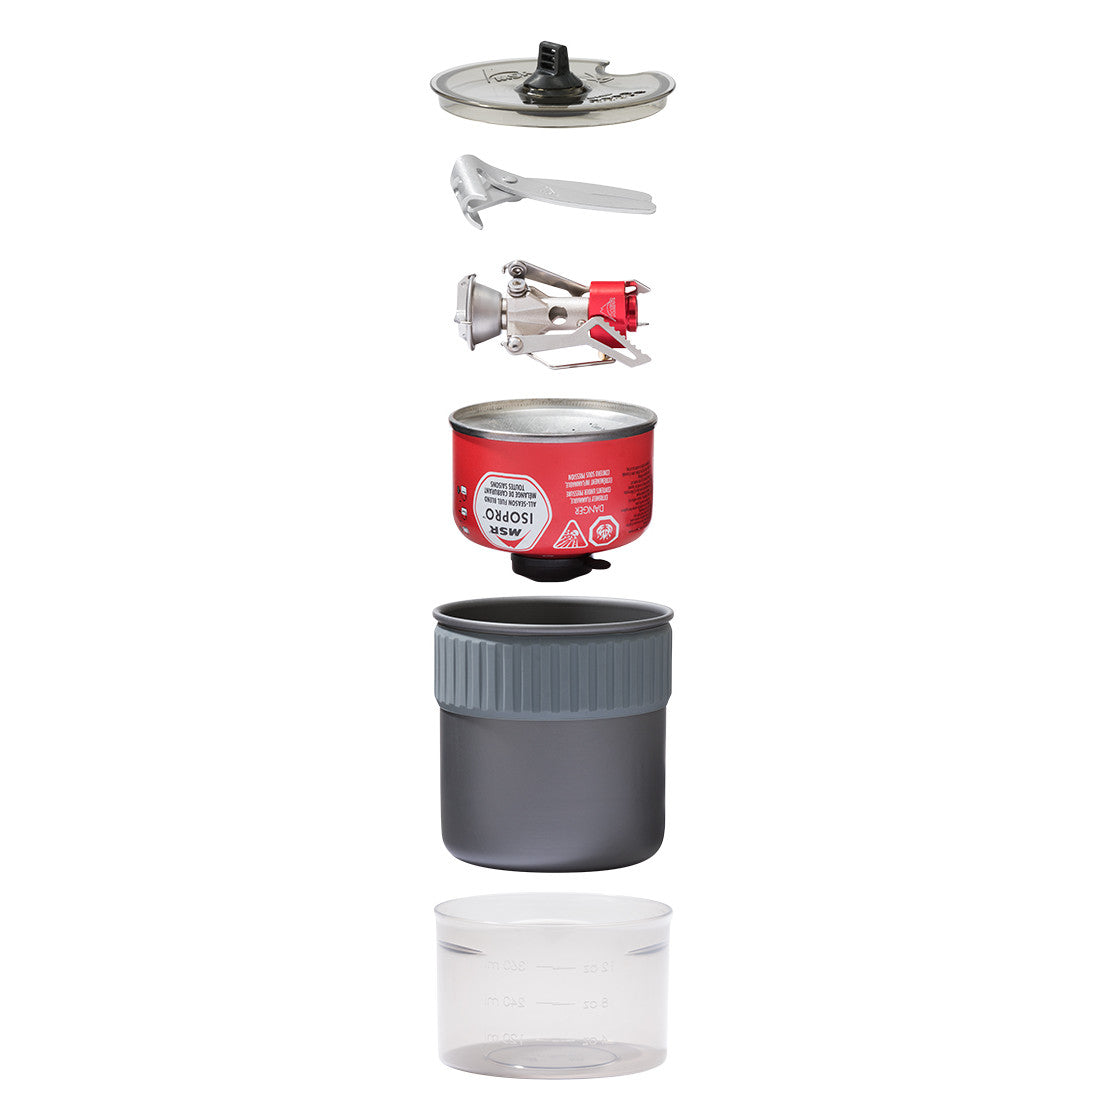 MSR PocketRocket 2 Mini Stove Kit, with contents shown stacked on top of one another